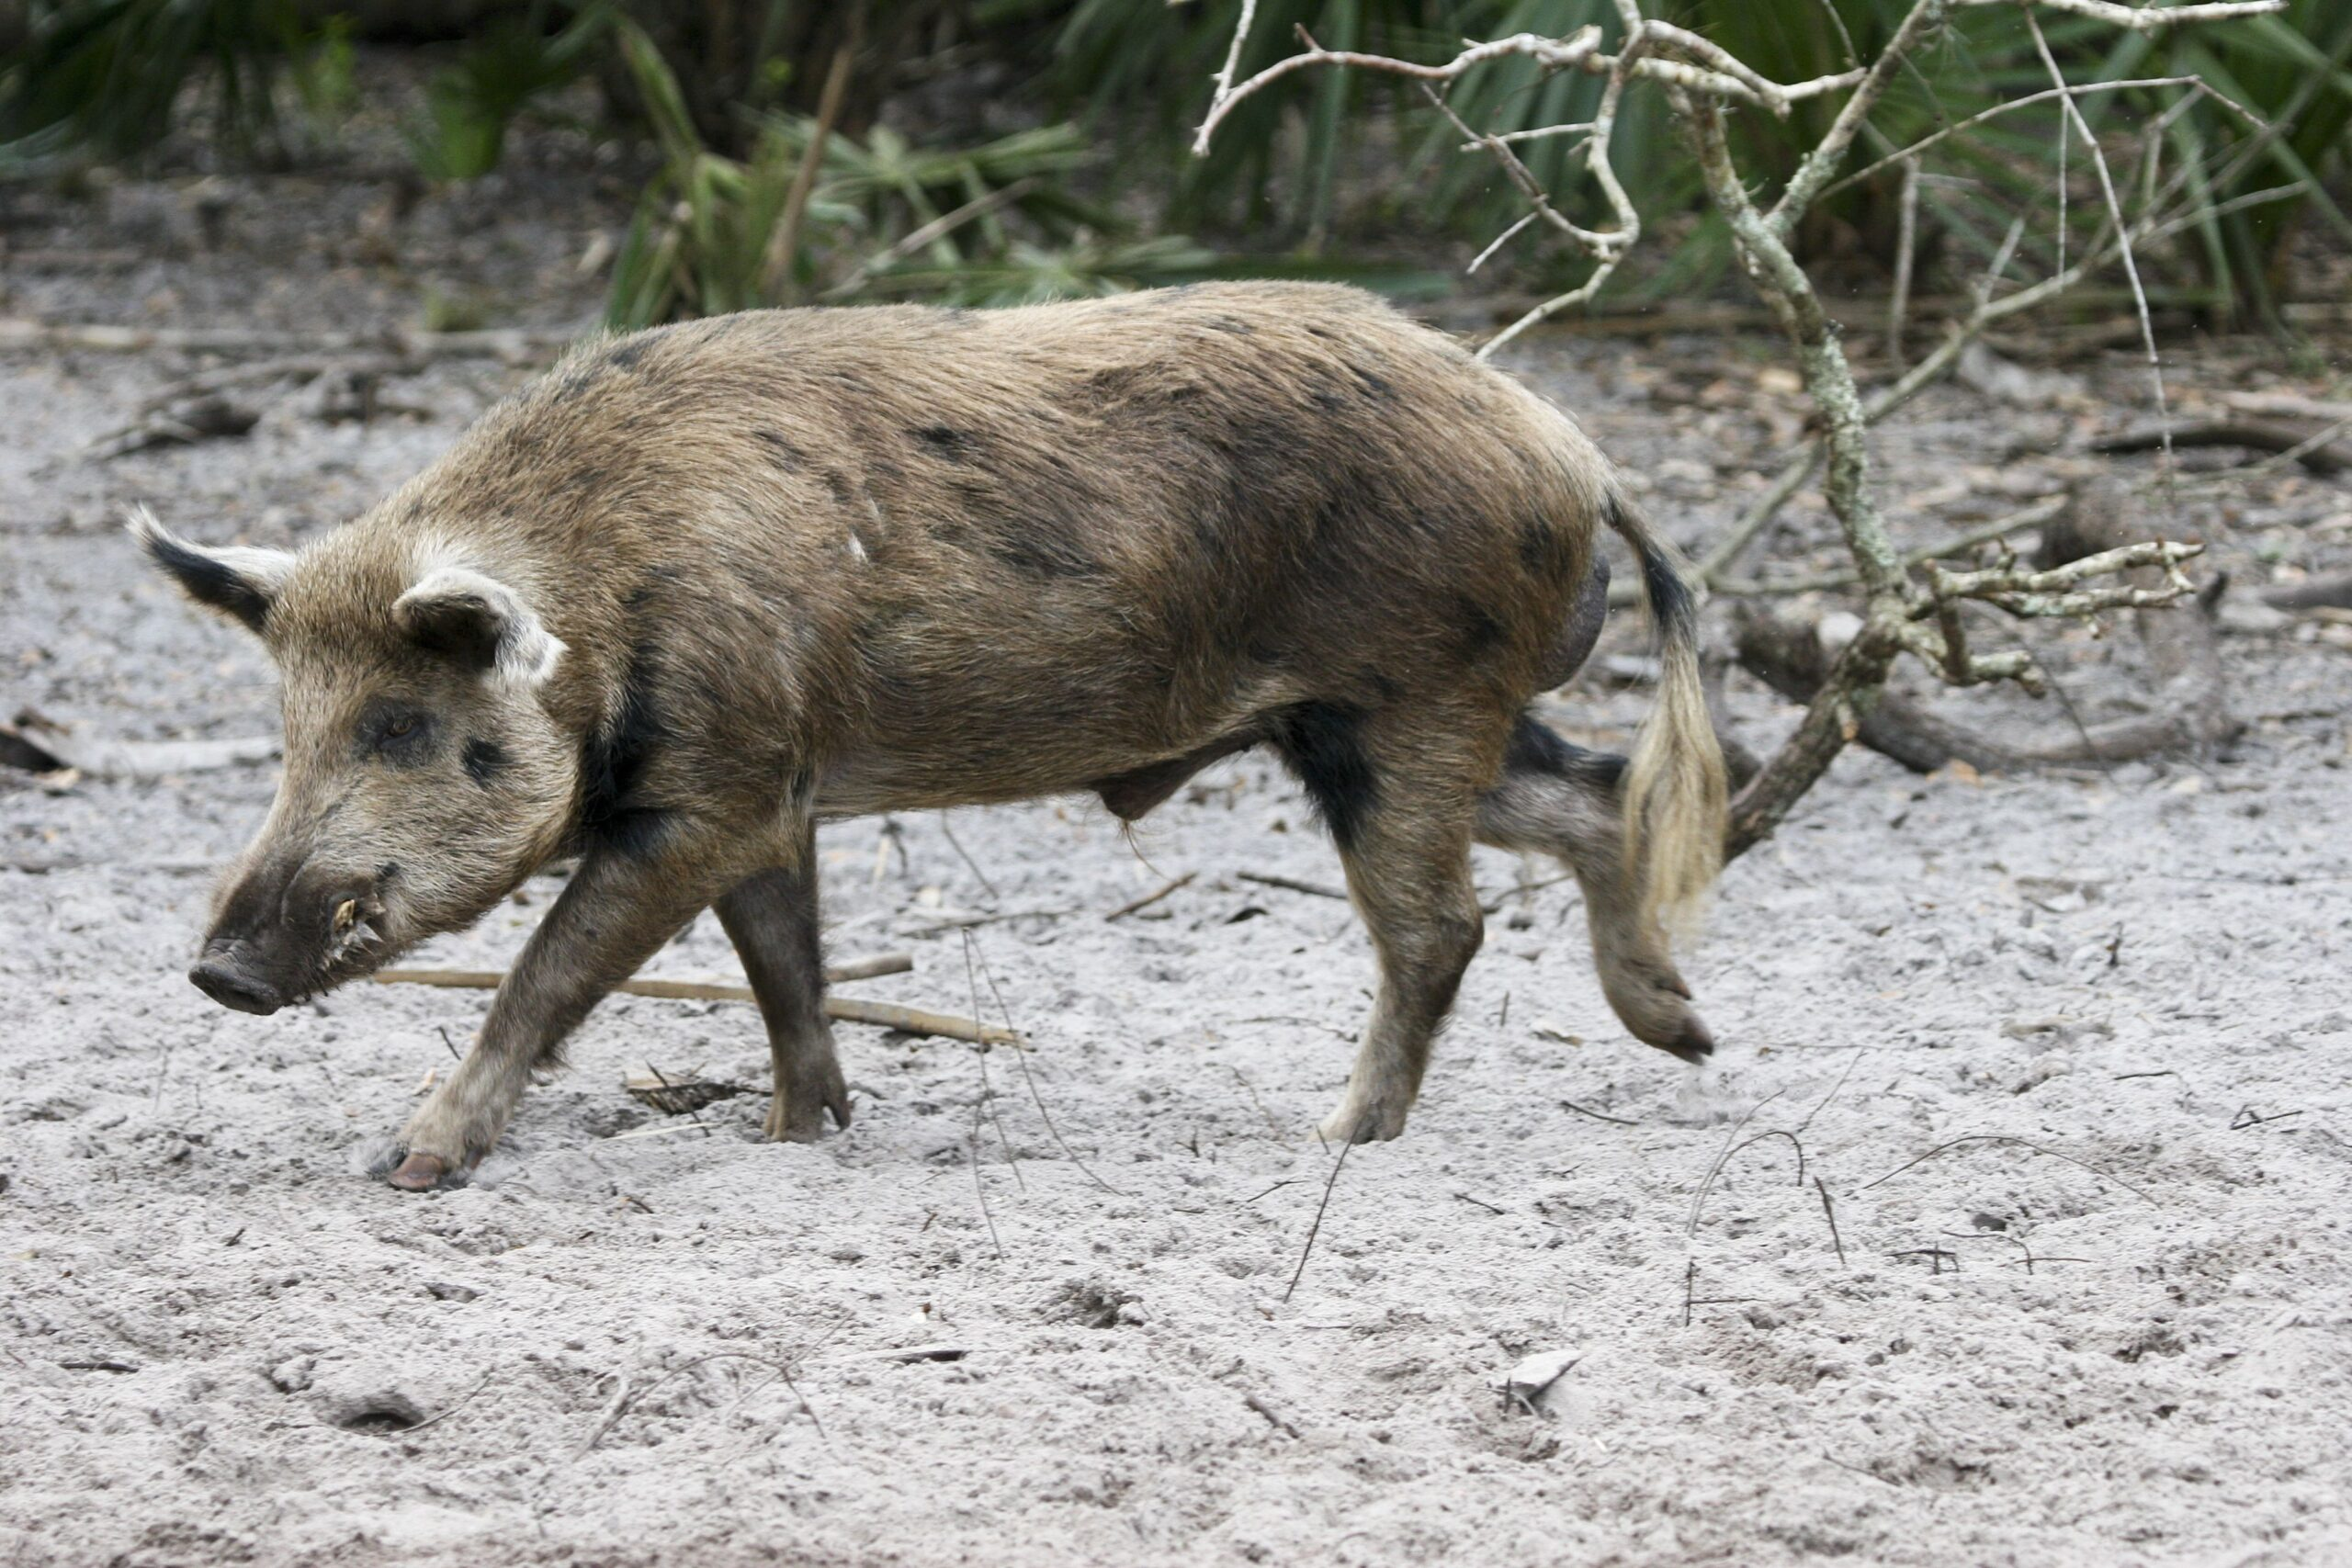 wild pig walking over dirty sand with plants in background